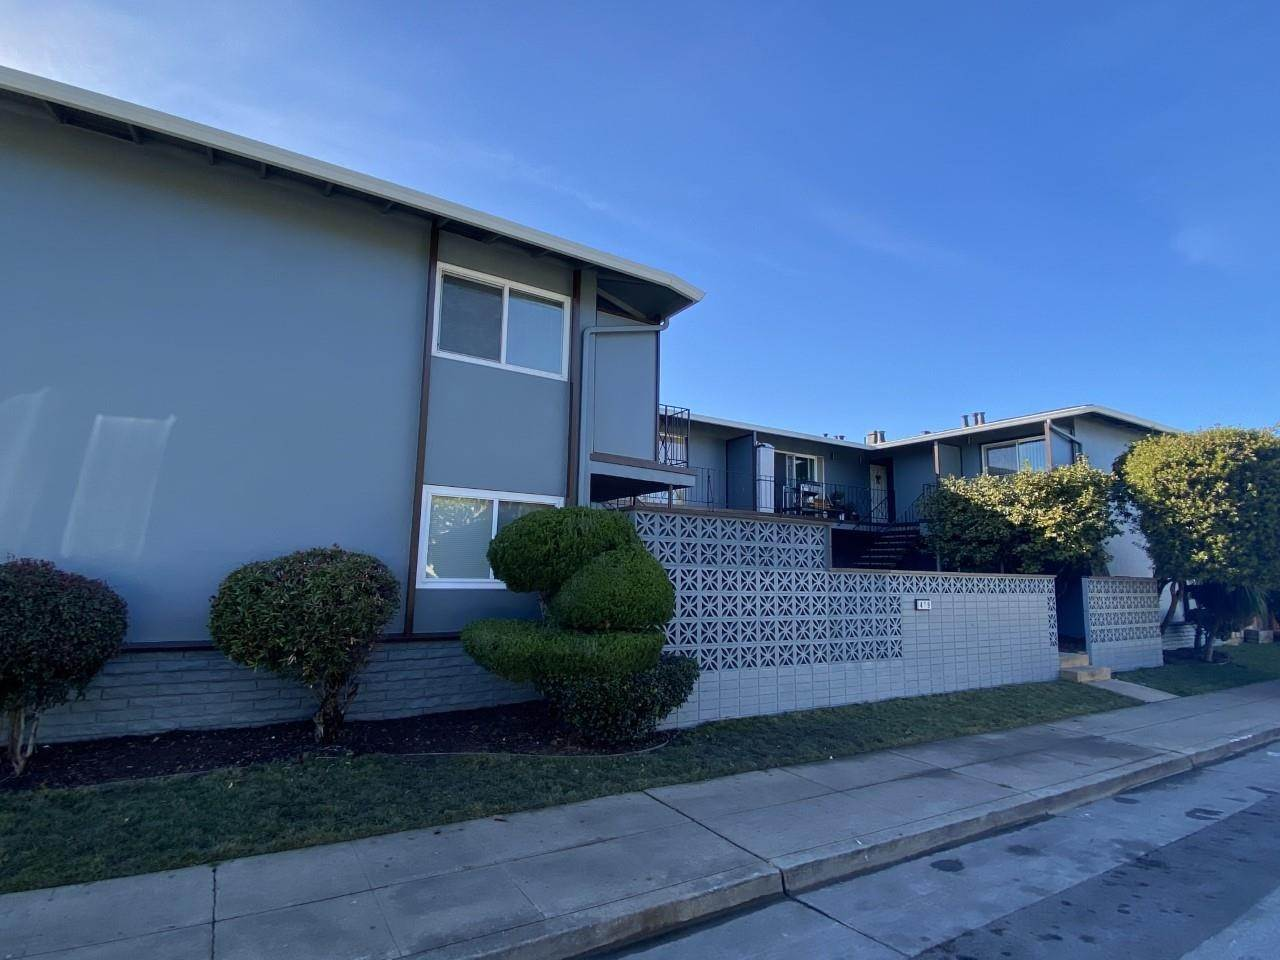 Multi-Family Homes for Sale at 429 Studio Circle San Mateo, California 94401 United States